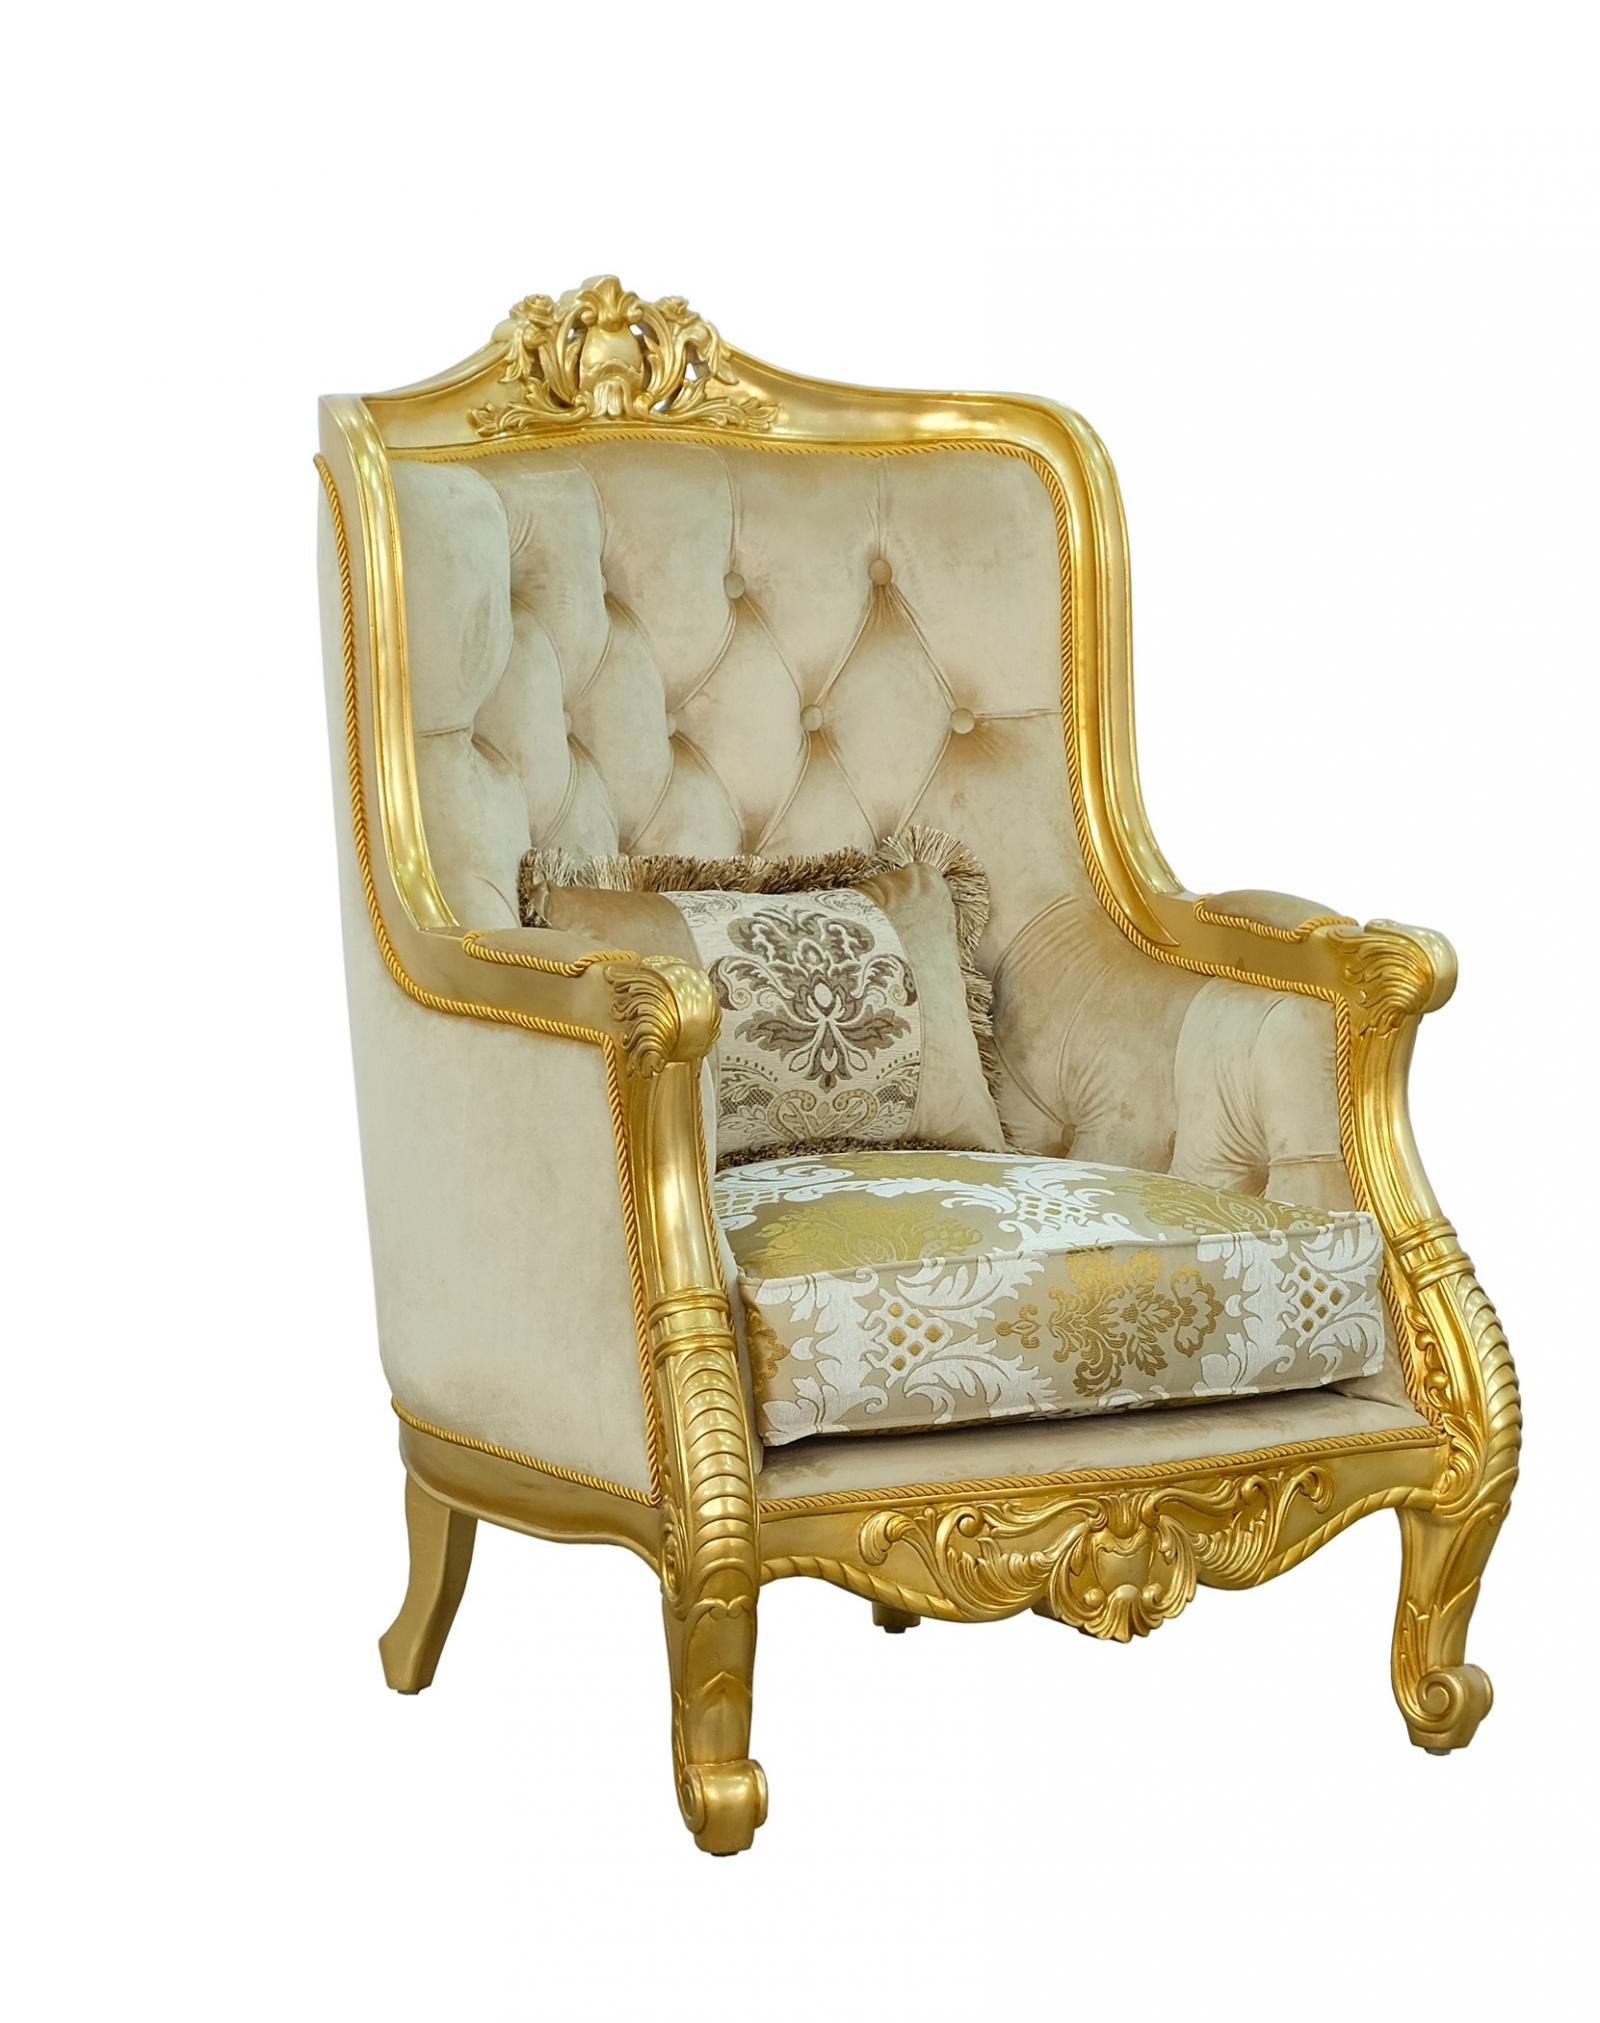 Classic  Traditional Beige  Gold  Antique  Ebony  Mahogany  Wood  Solid Hardwood and Fabric Arm Chair EUROPEAN FURNITURE 668584-C